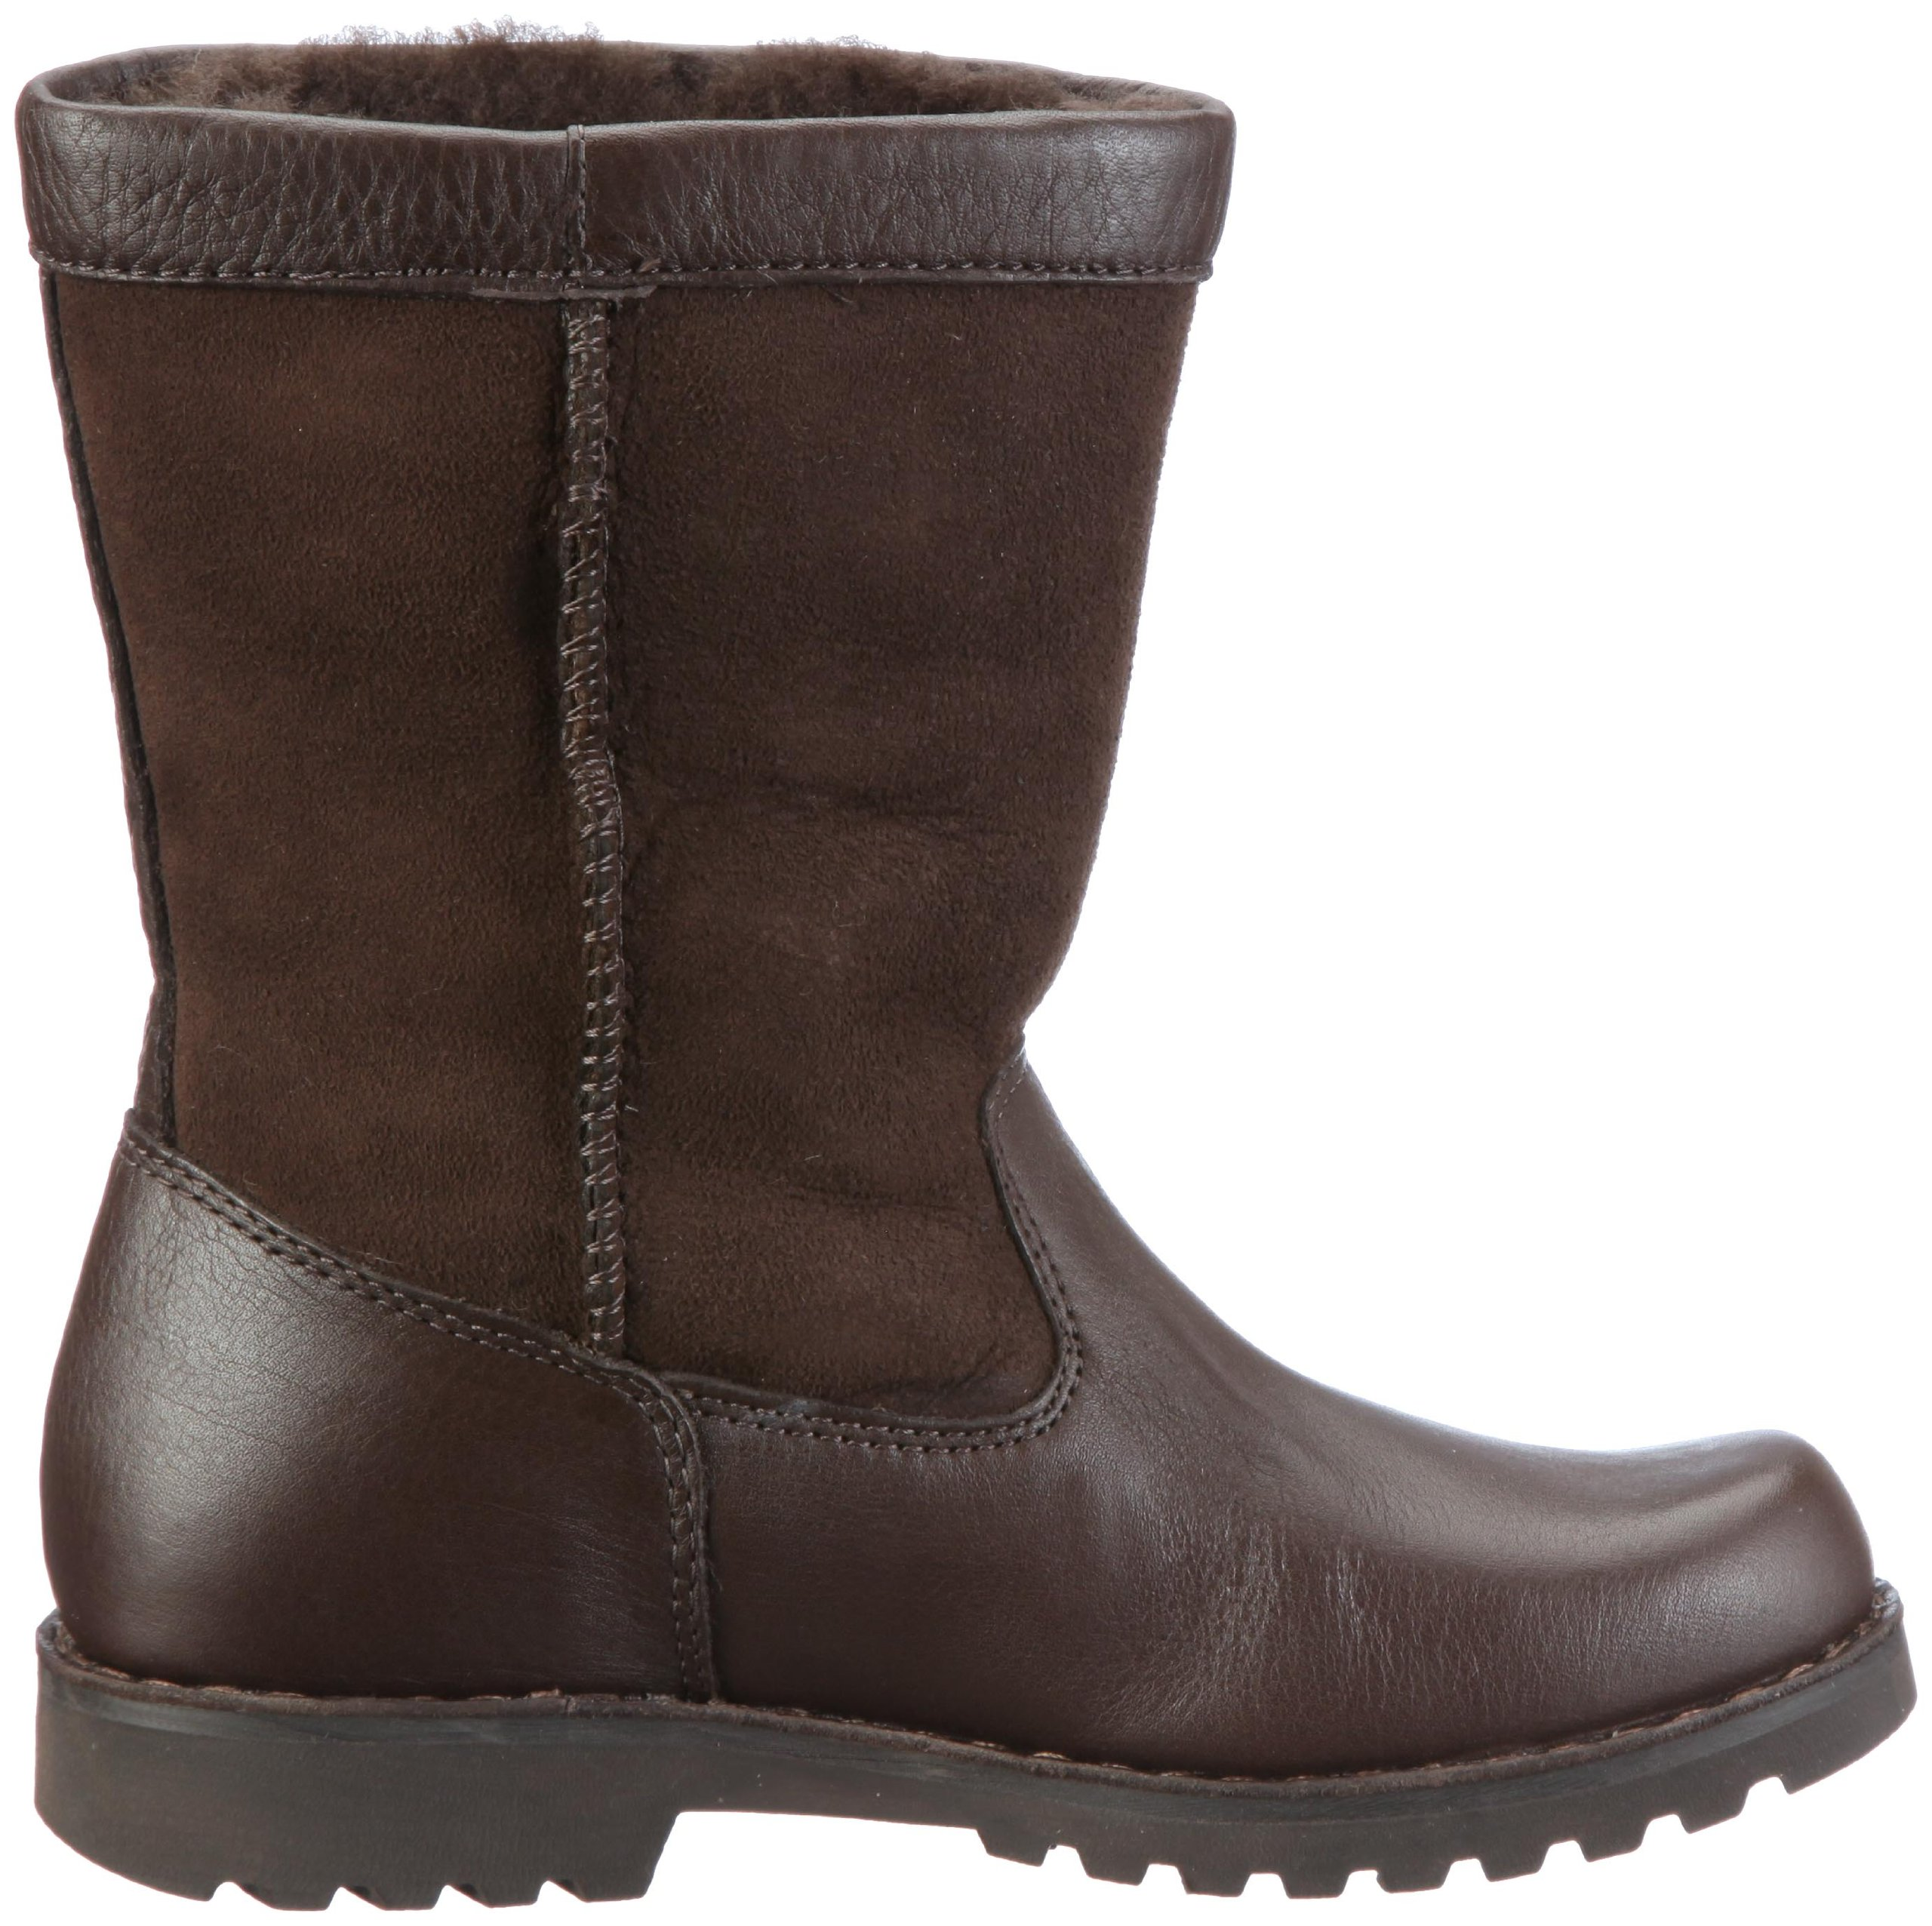 UGG Australia Children's Riverton Suede Boots,Chocolate/Chocolate,5 Child US by UGG (Image #6)